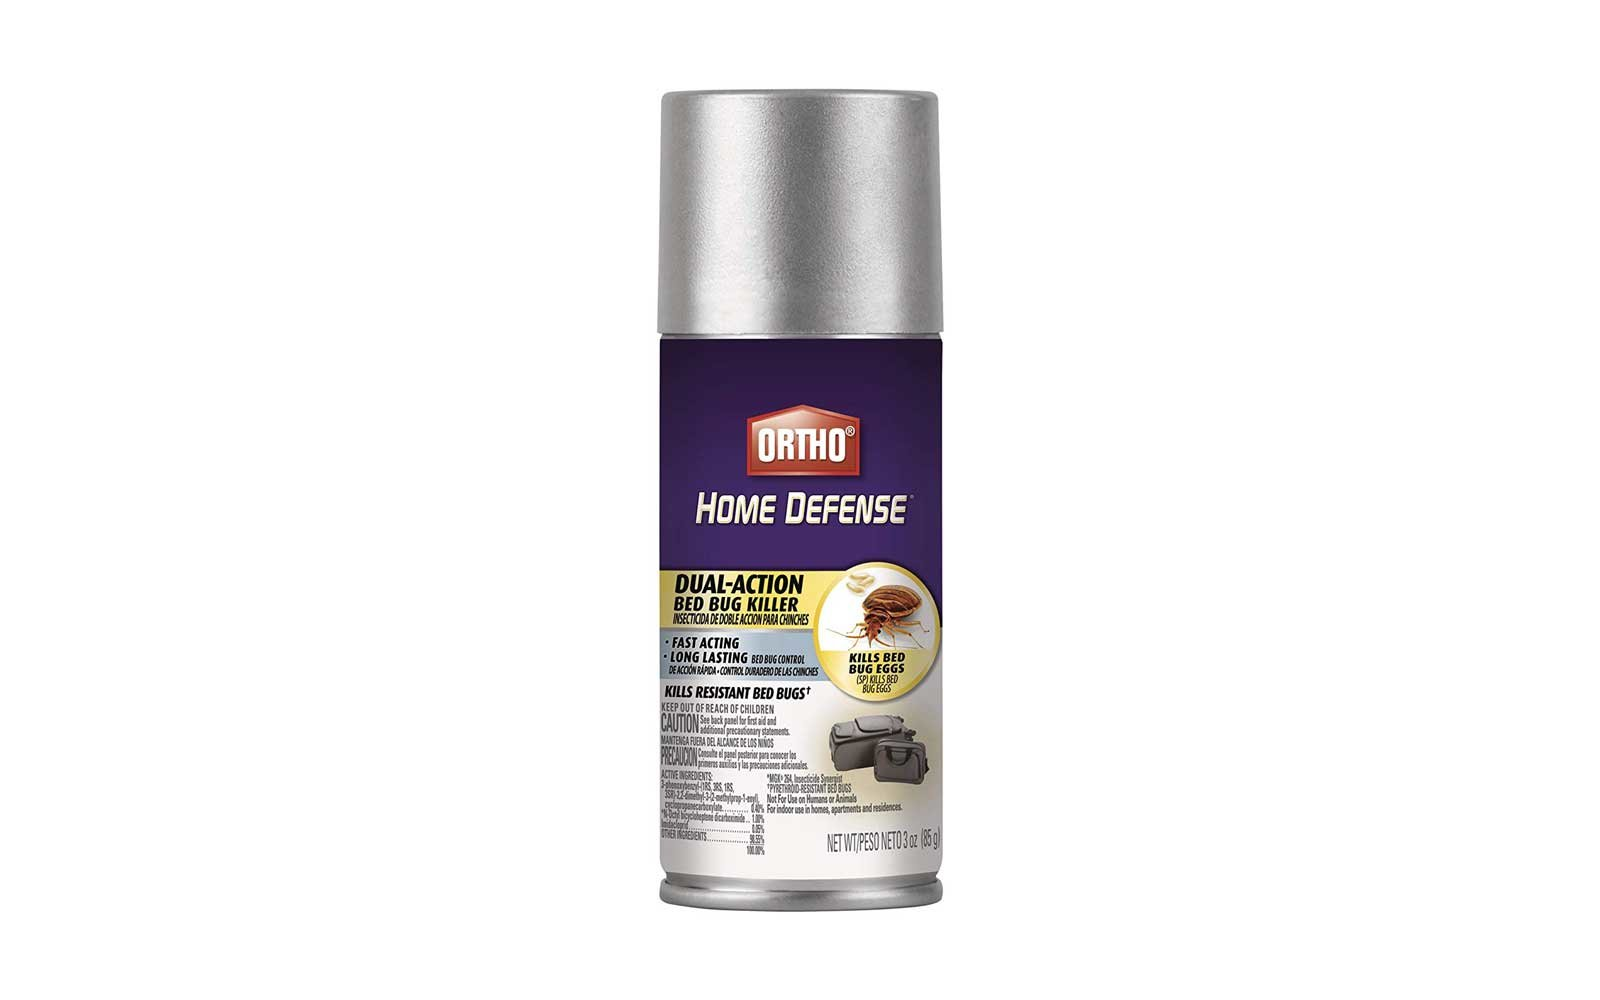 best ortho bed bug spray